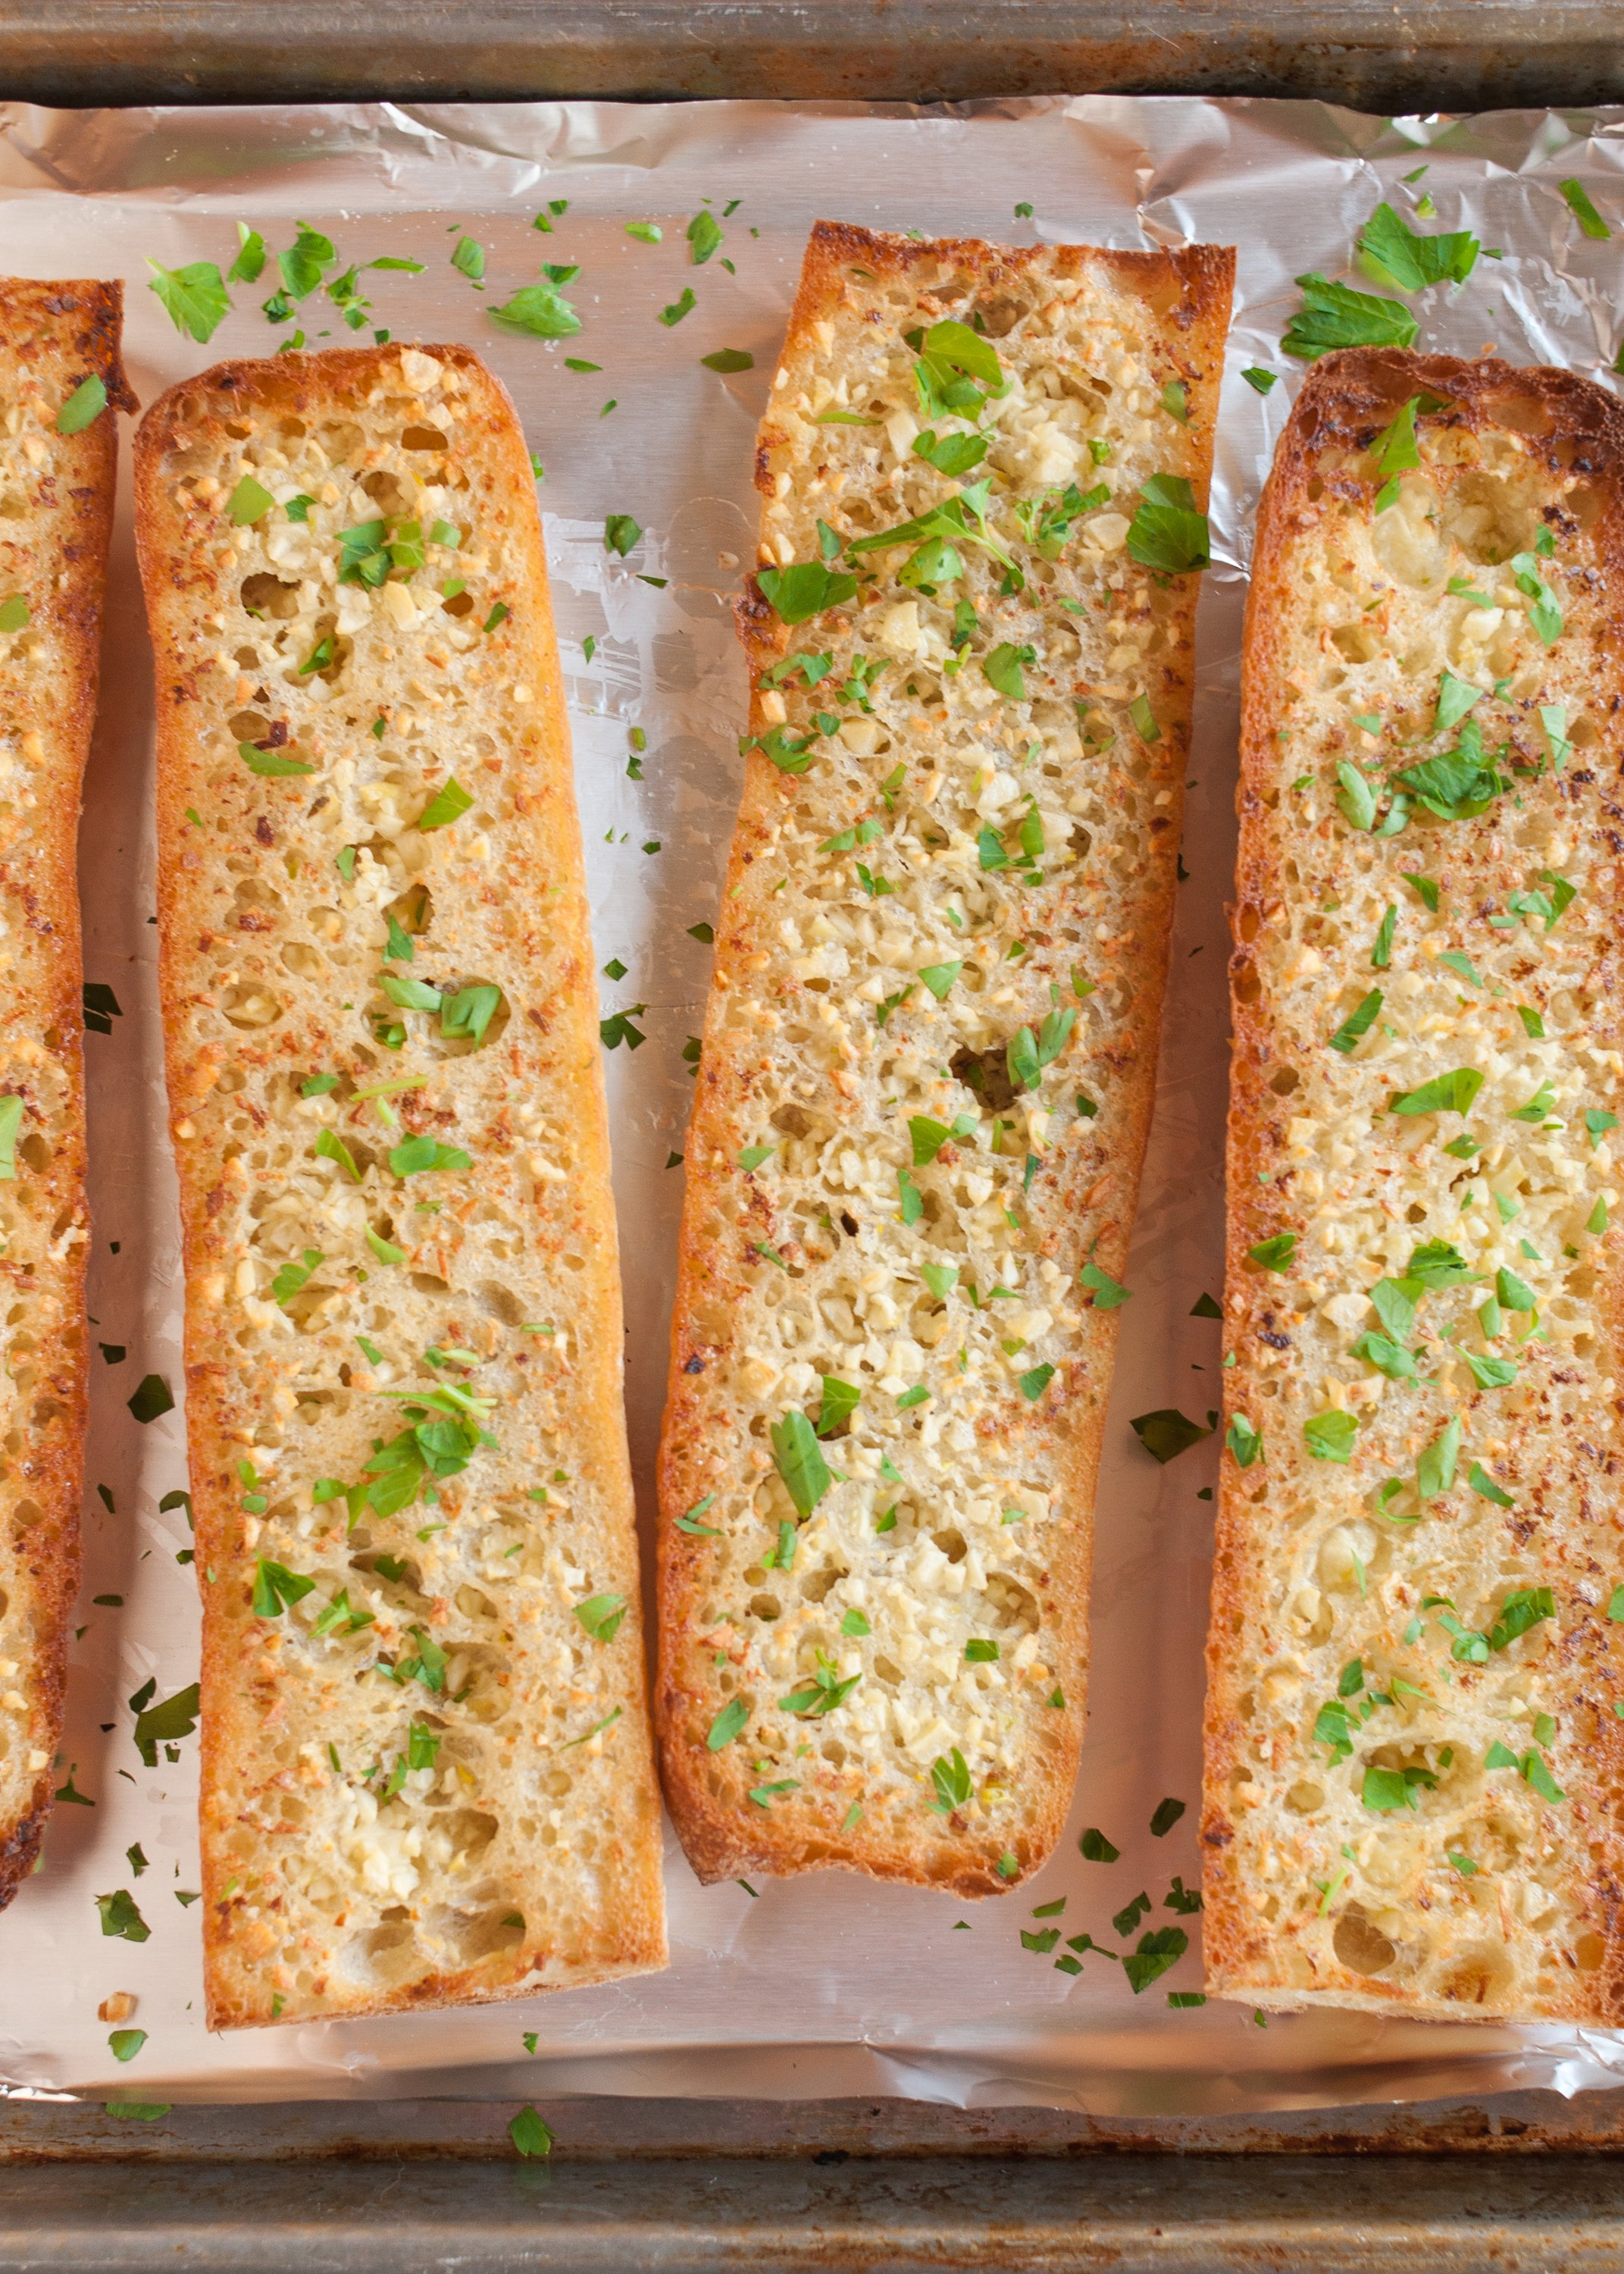 How To Make Garlic Bread Kitchn